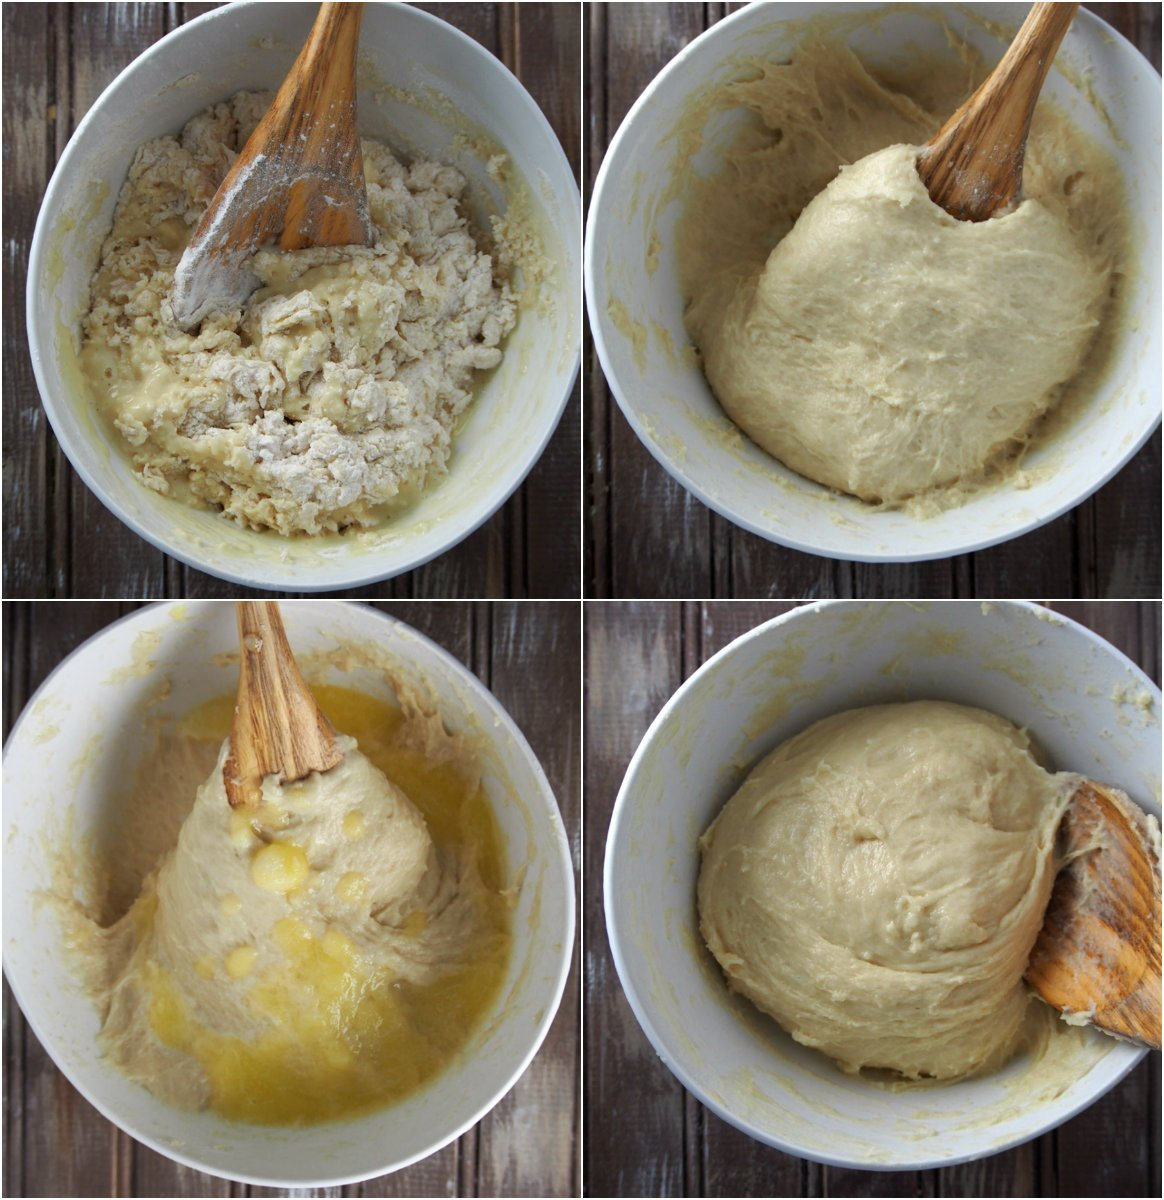 The process of mixing the dough for Mini Double Chocolate Buns.